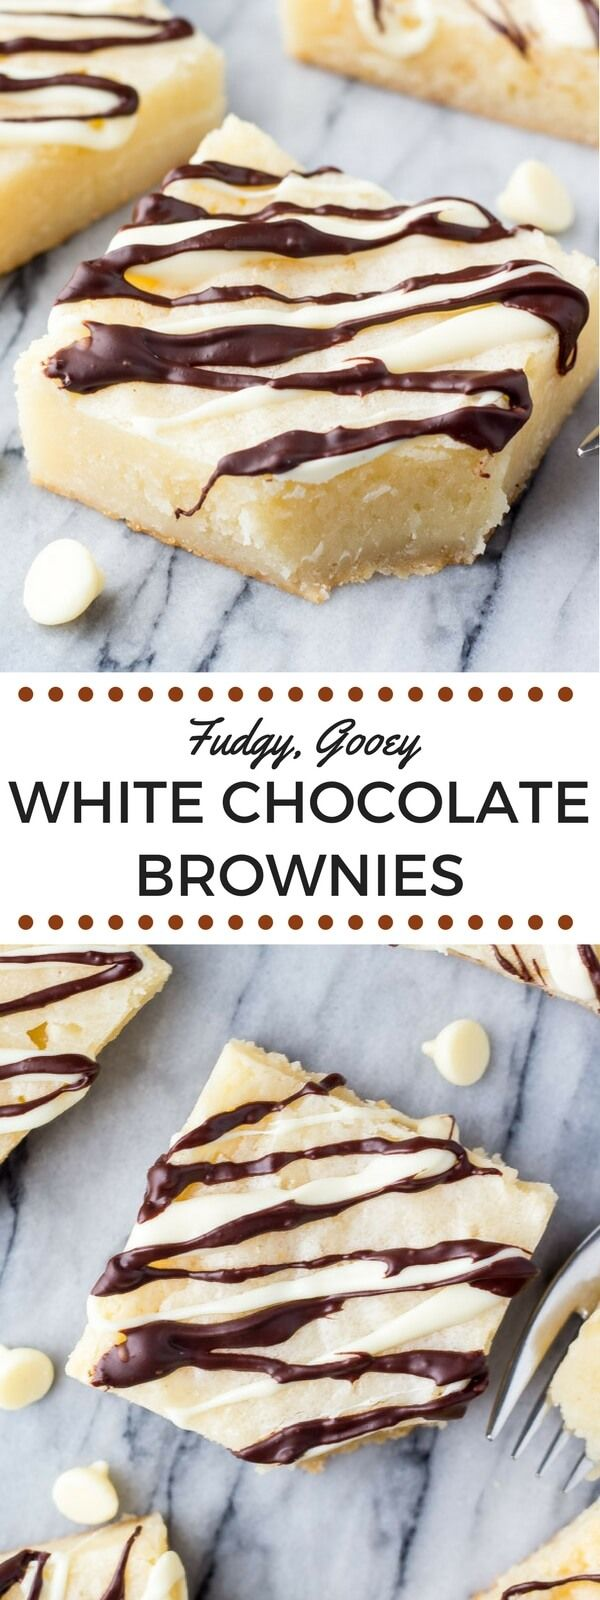 Best 25+ White chocolate ideas only on Pinterest | White chocolate ...